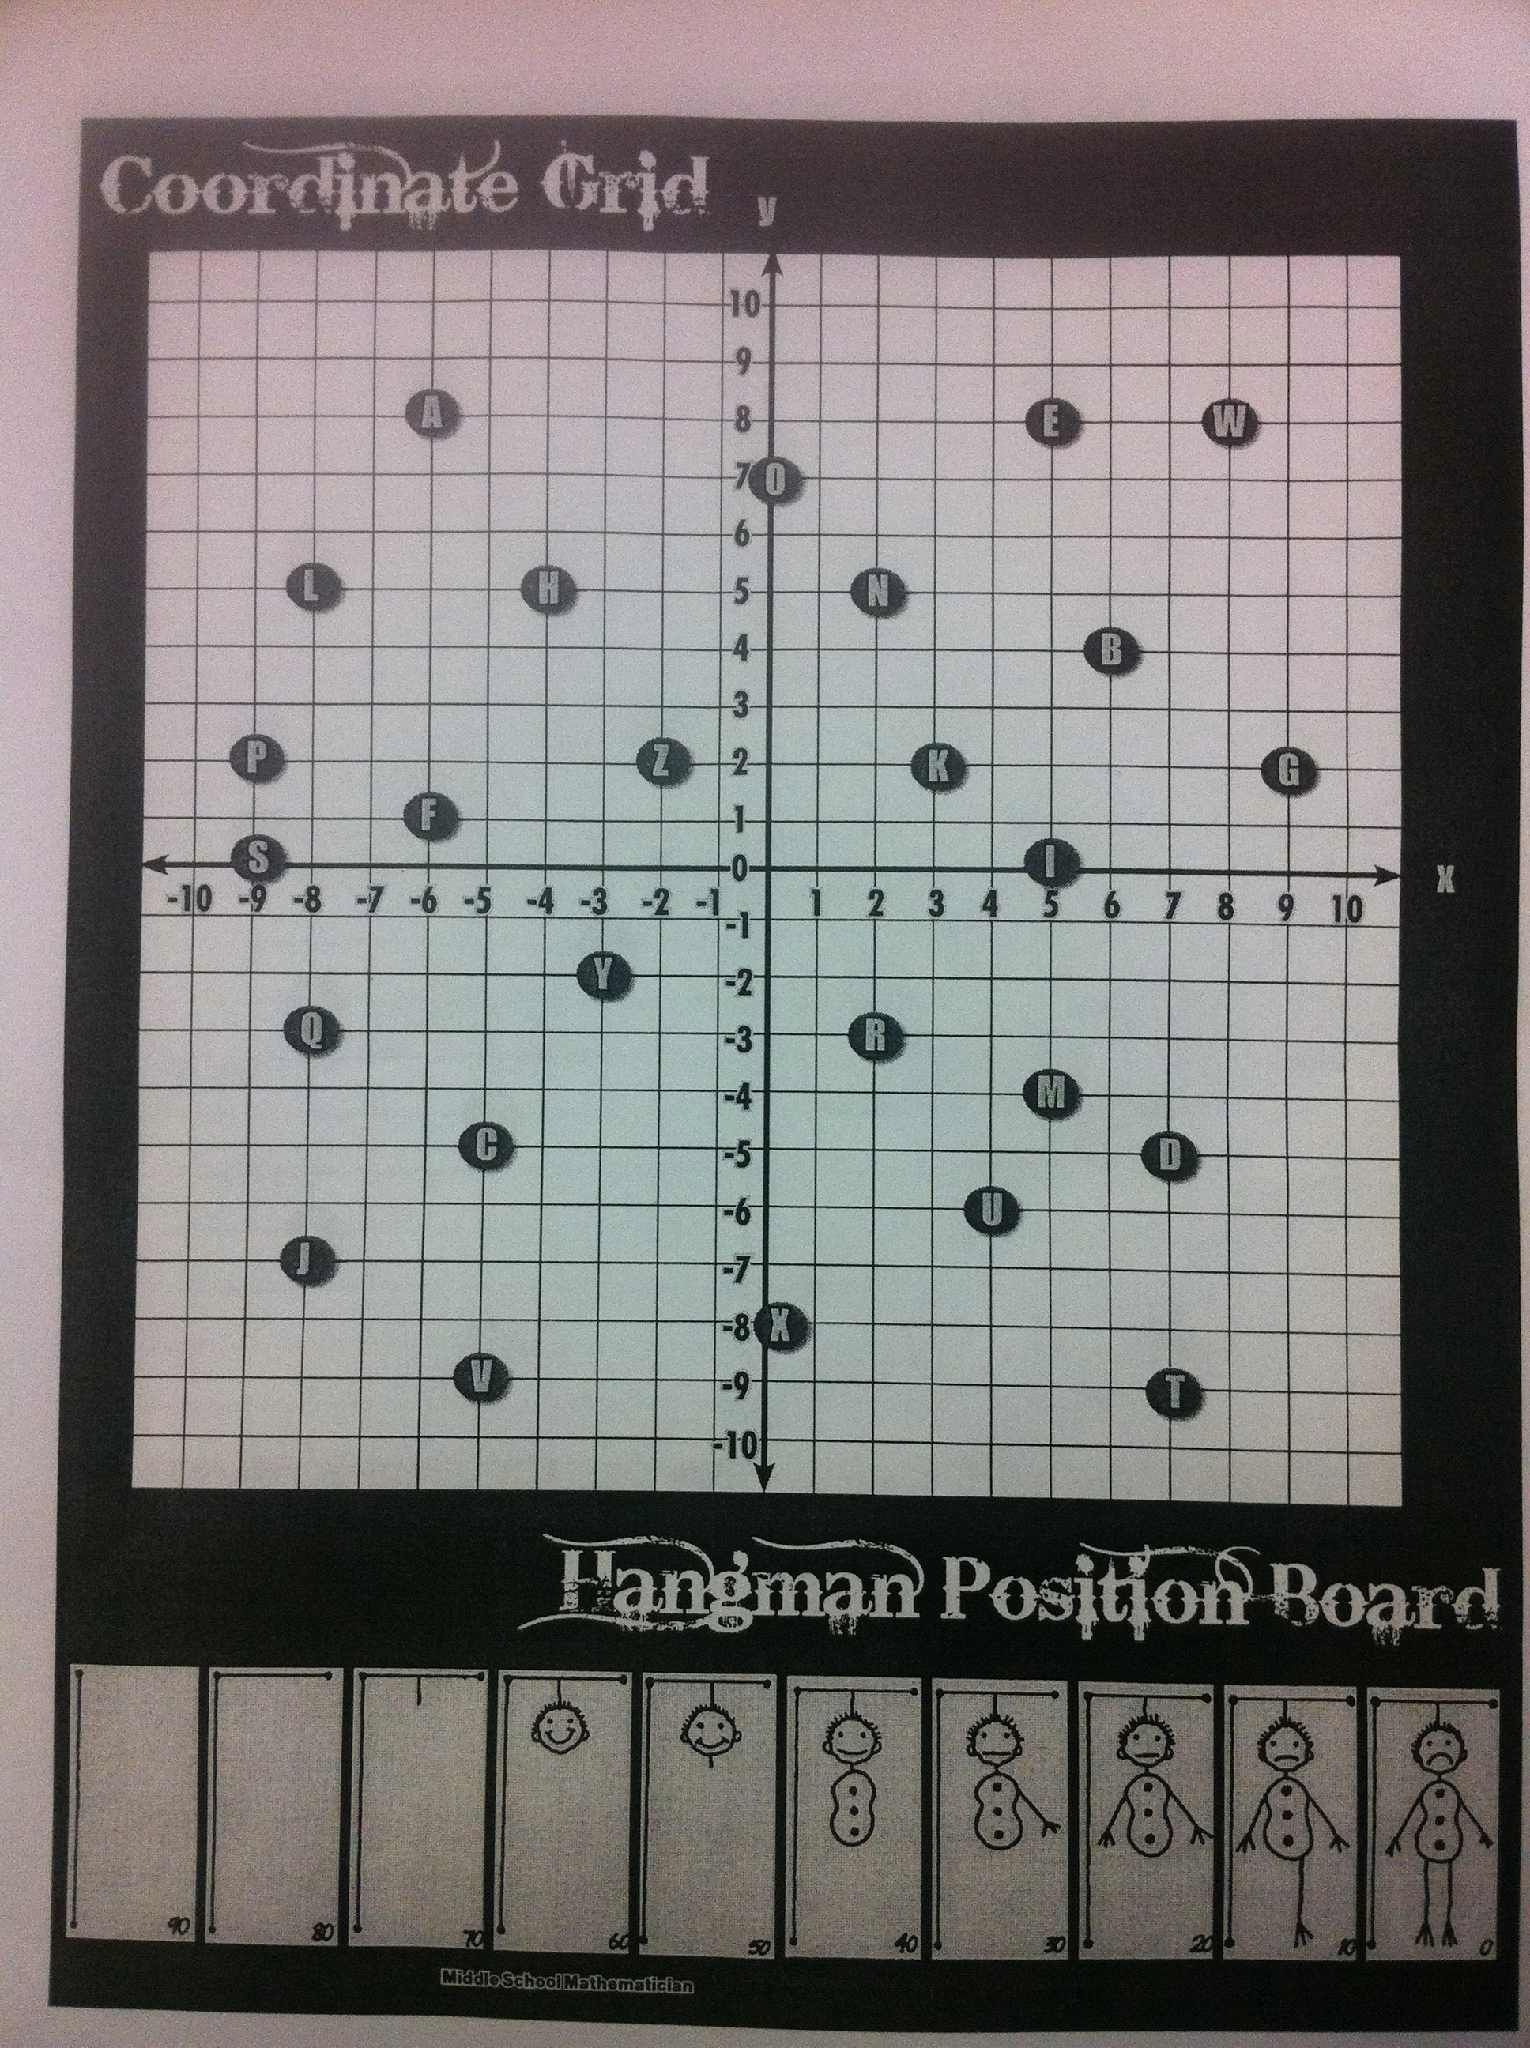 Coordinate Grid Hangman Played Just Like Hangman Only Instead Of Giving The Actual Letter